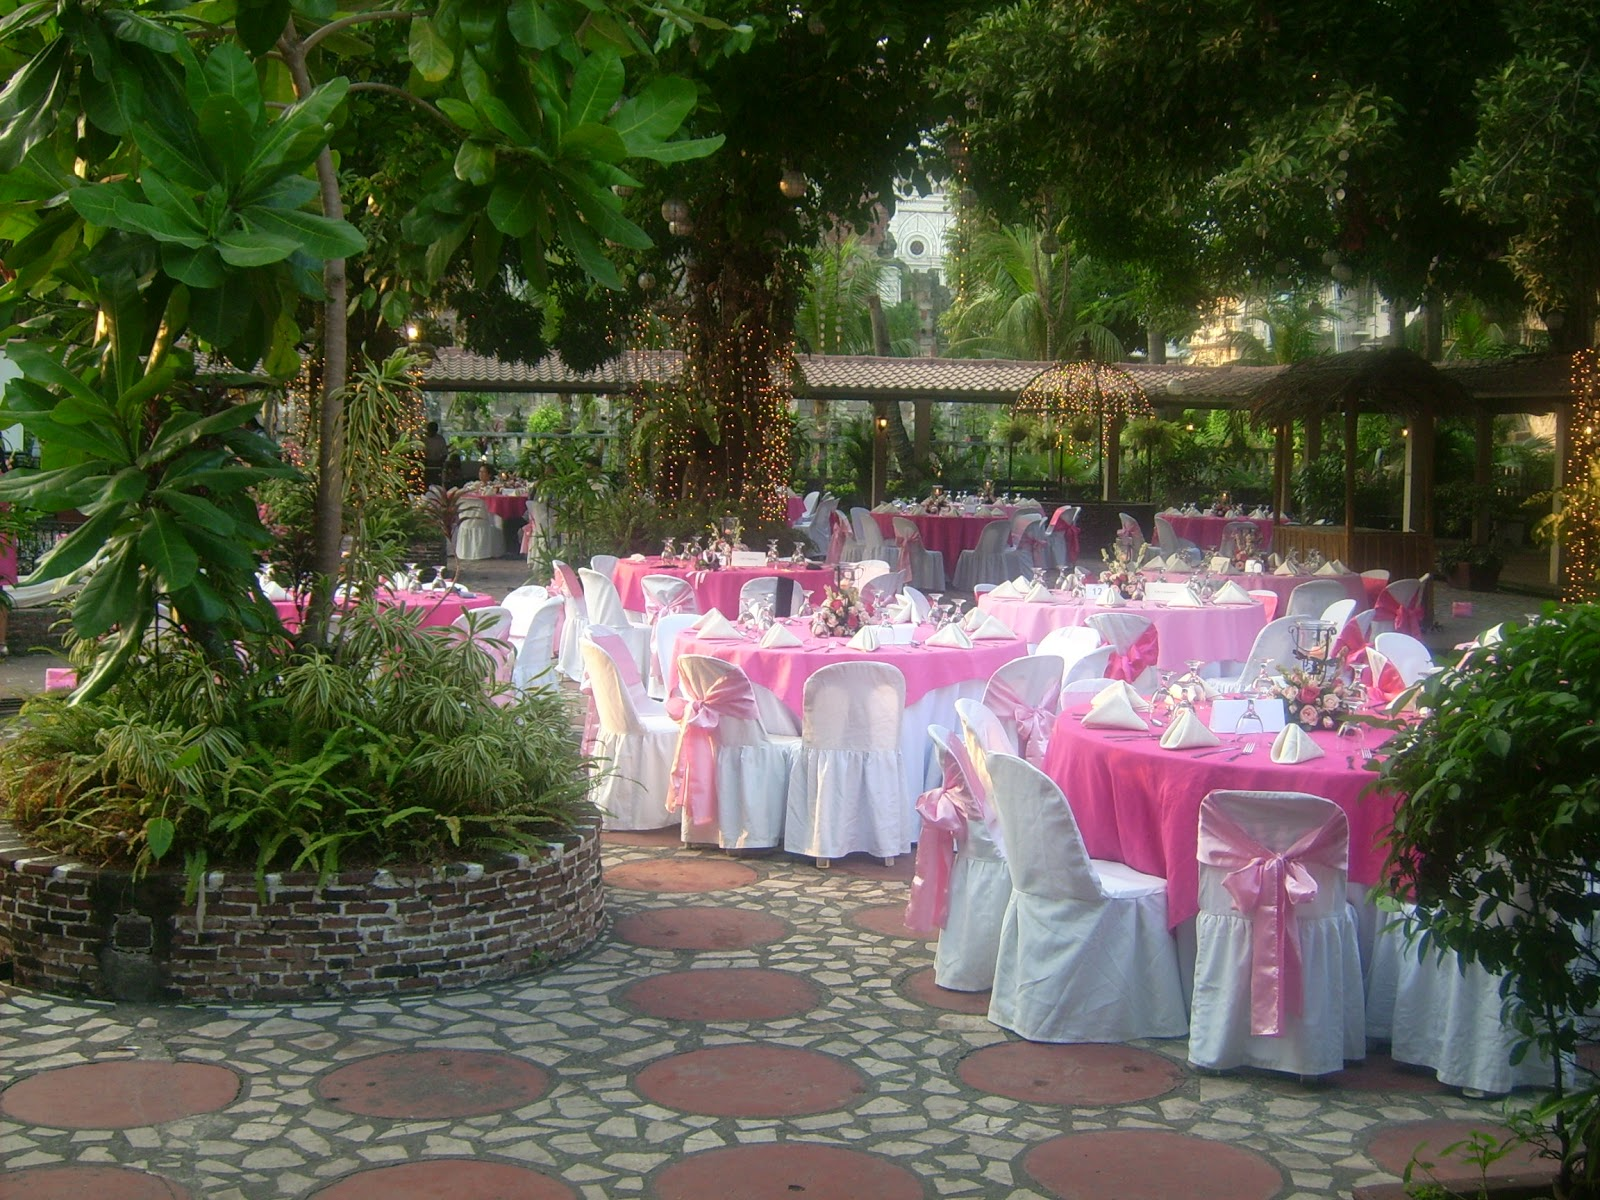 Lq designs ideas for wedding receptions on a budget for Outdoor wedding reception ideas